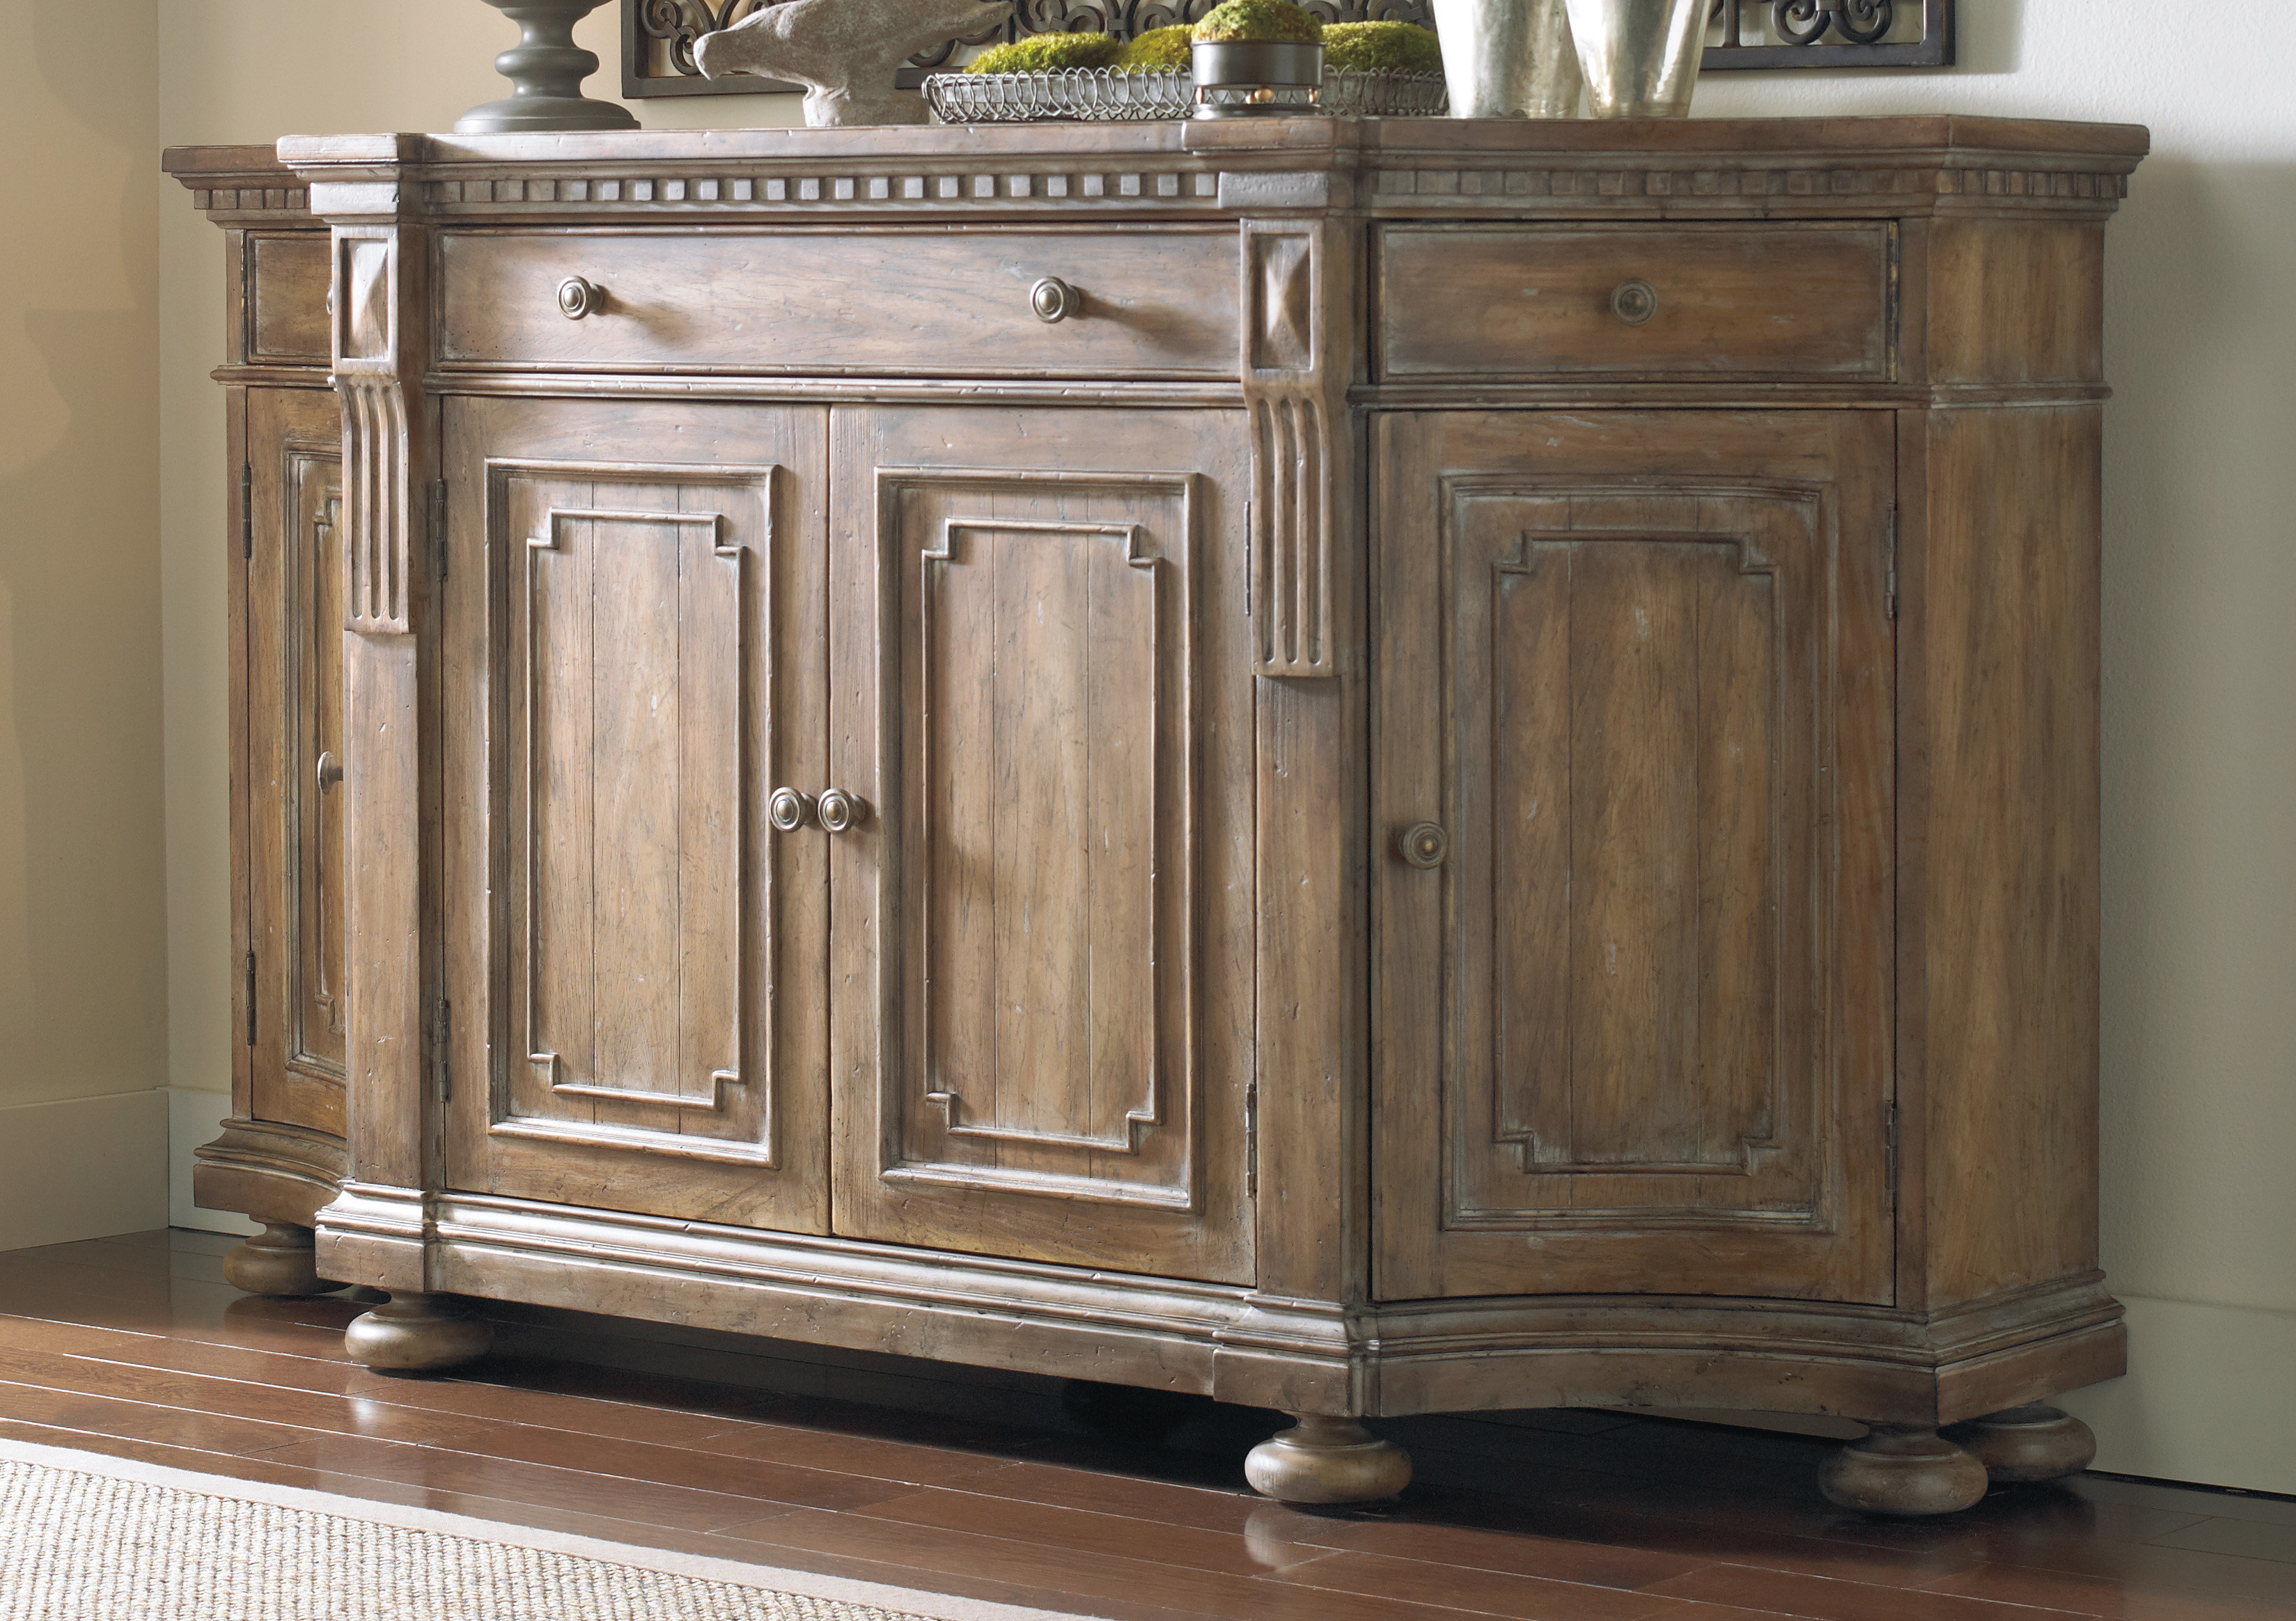 Farmhouse & Rustic Hooker Furniture Sideboards & Buffets Within Current Melange Brockton Sideboards (View 11 of 20)